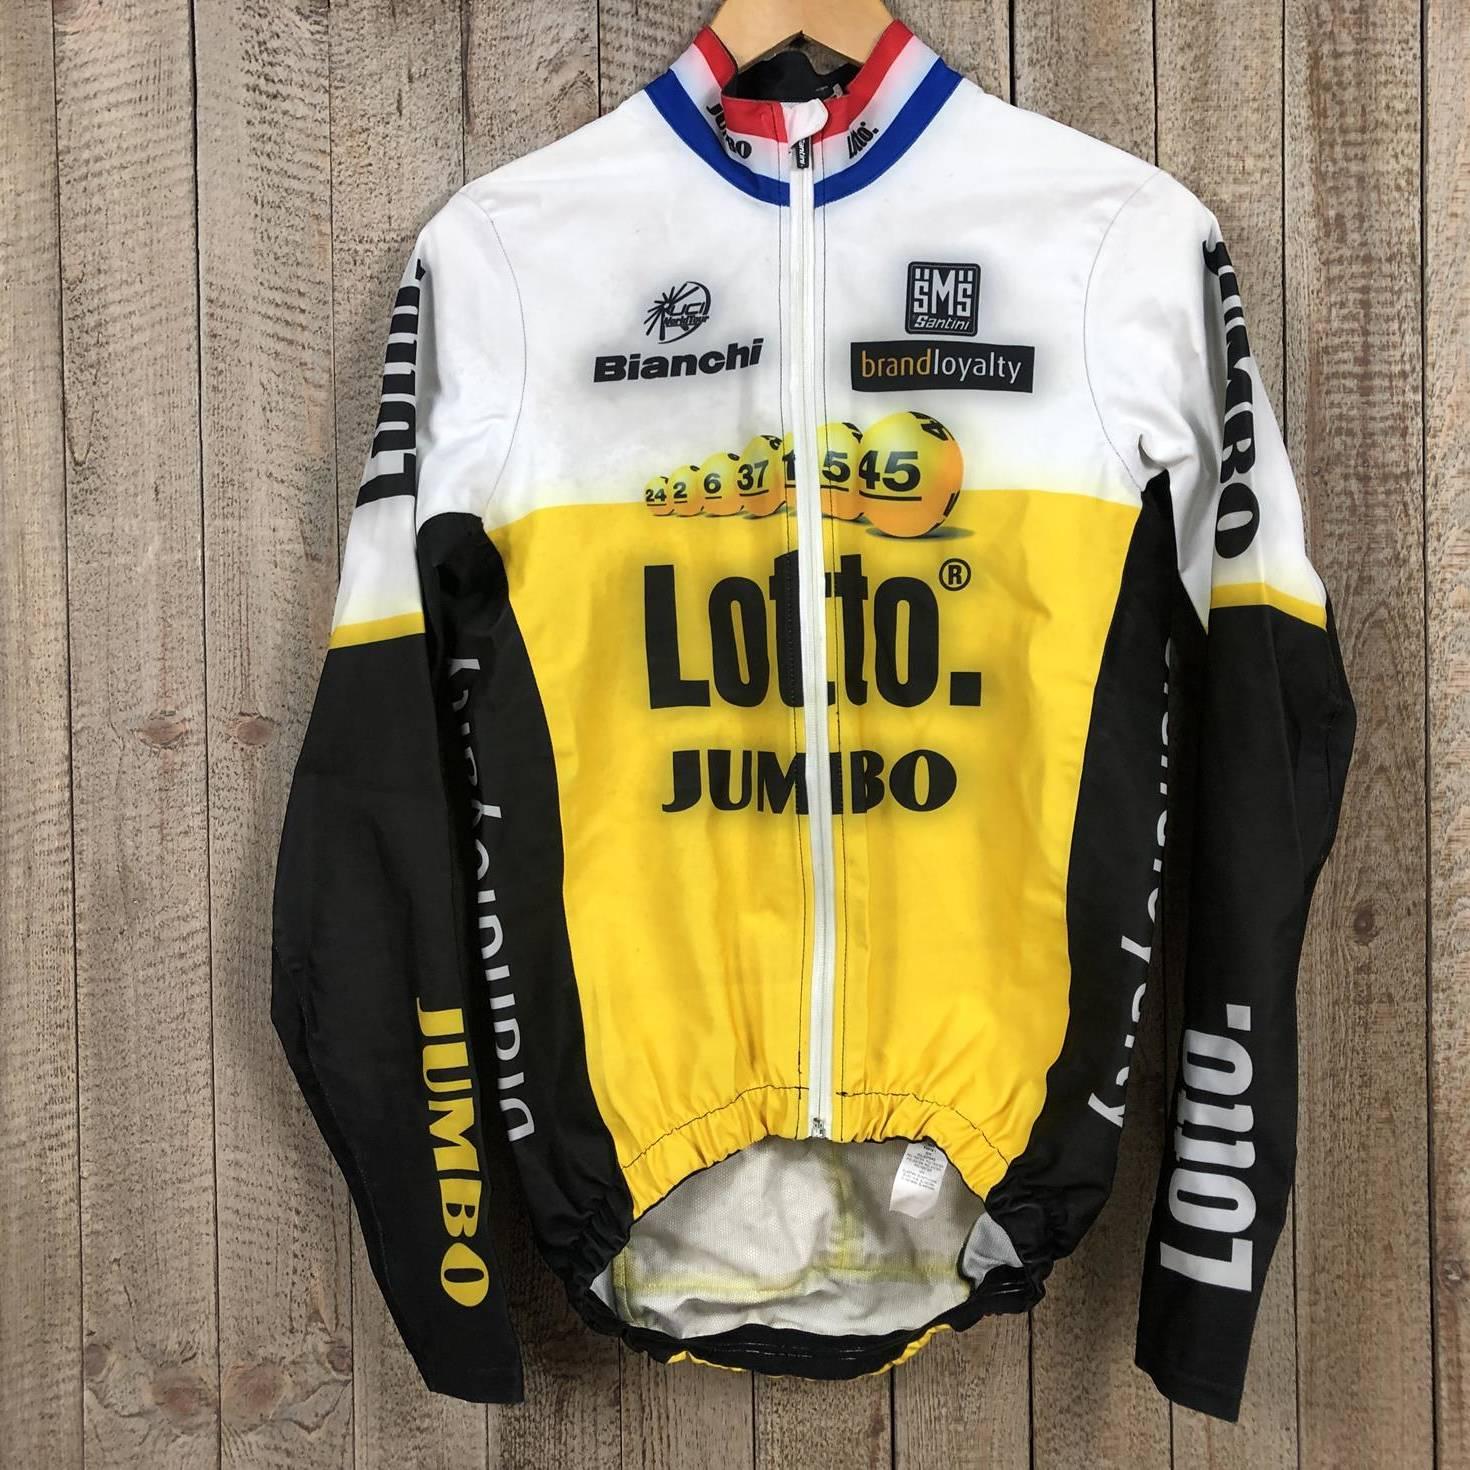 Dutch Ex-National Champion Rainproof Jacket - Lotto Jumbo 00002785 (1)